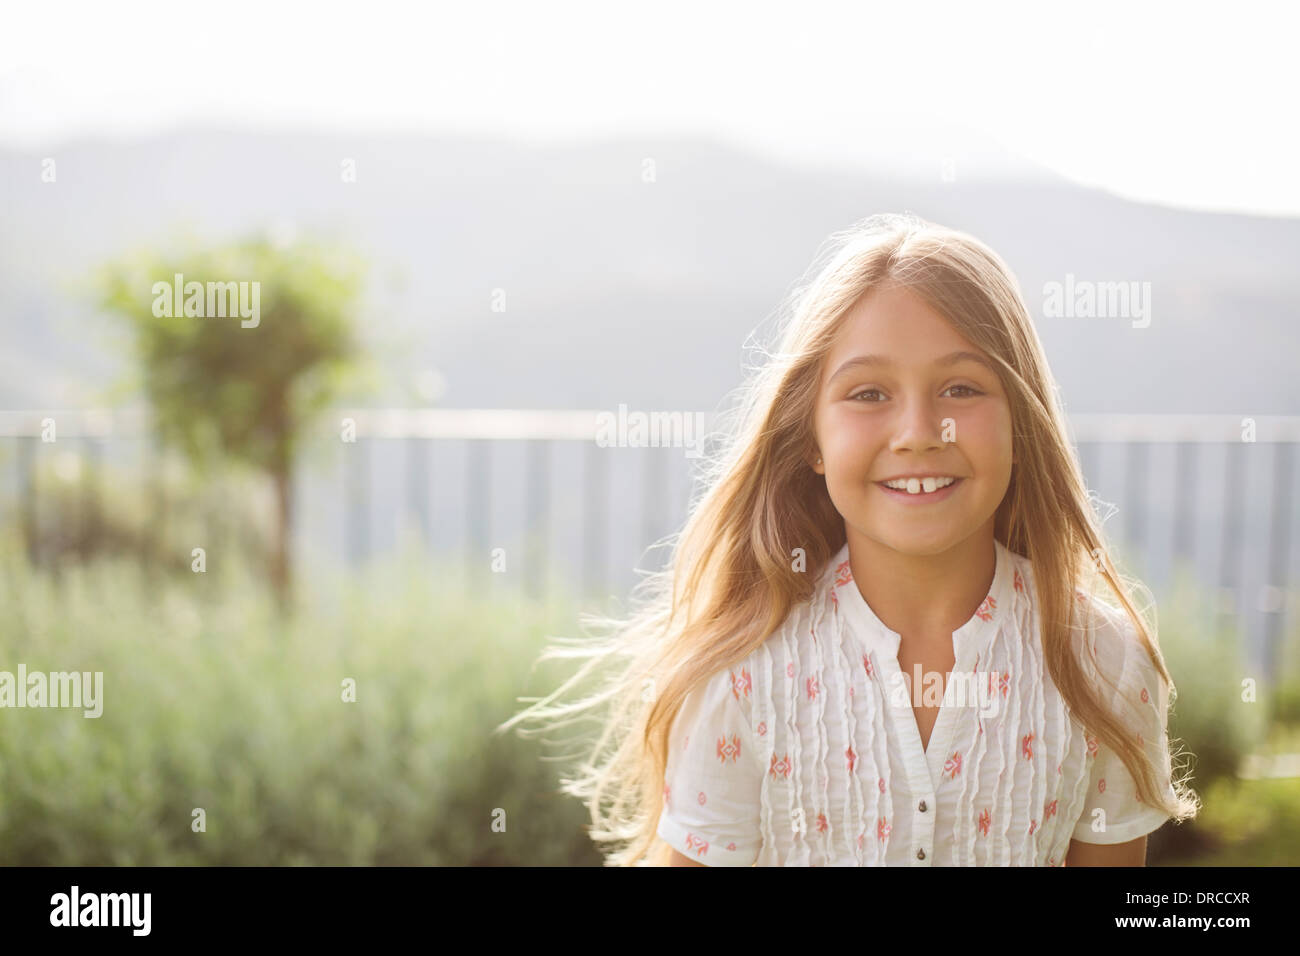 Girl smiling outdoors - Stock Image